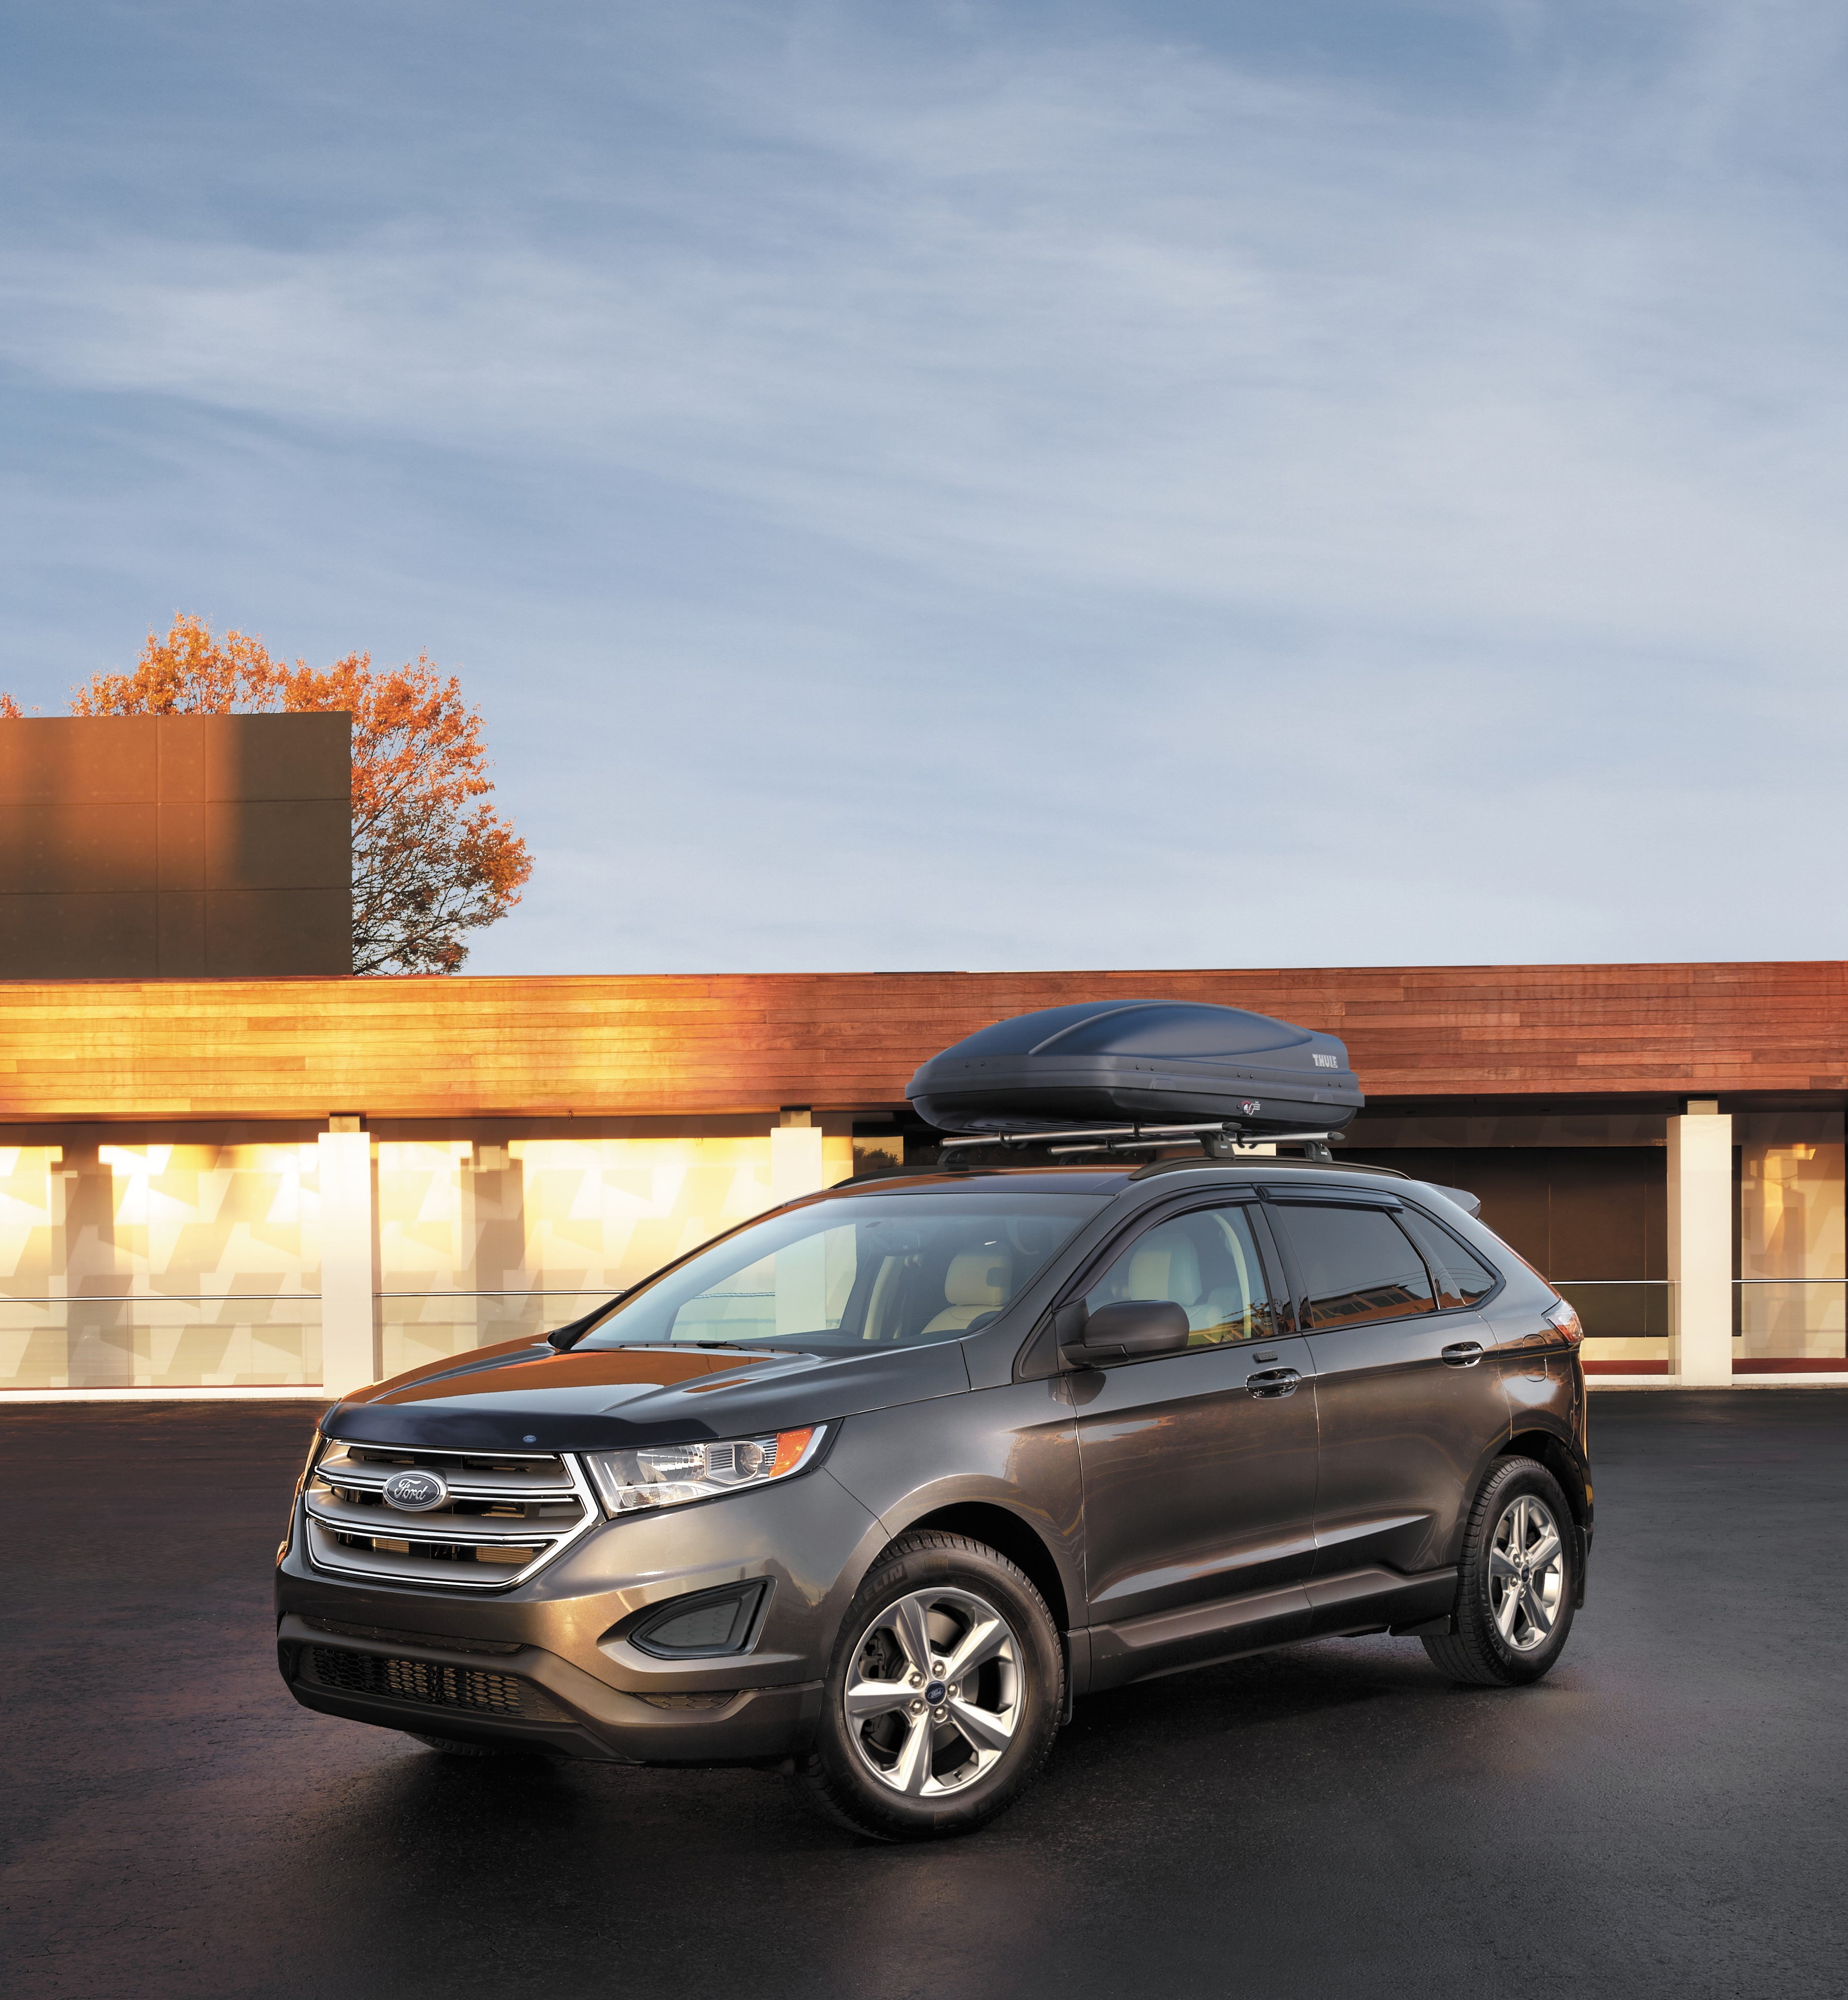 Ford Edge With A Roof Rack